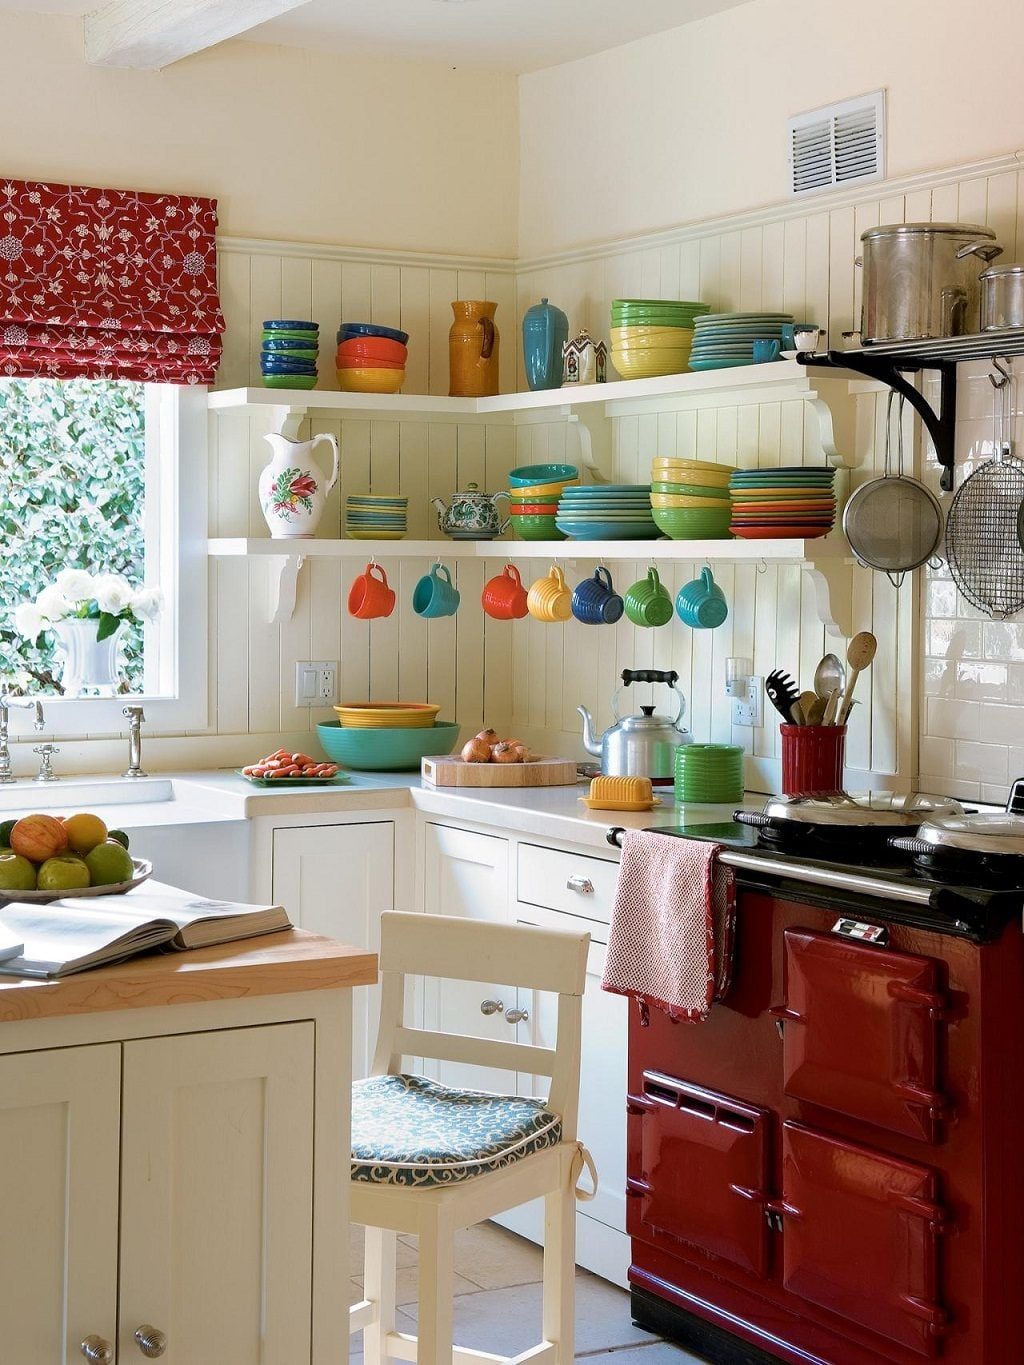 Artistic Small Kitchen Colors Withal Pictures Of Small Kitchen Design Ideas From Hgtv Kitchen Ideas - cigicigi.co